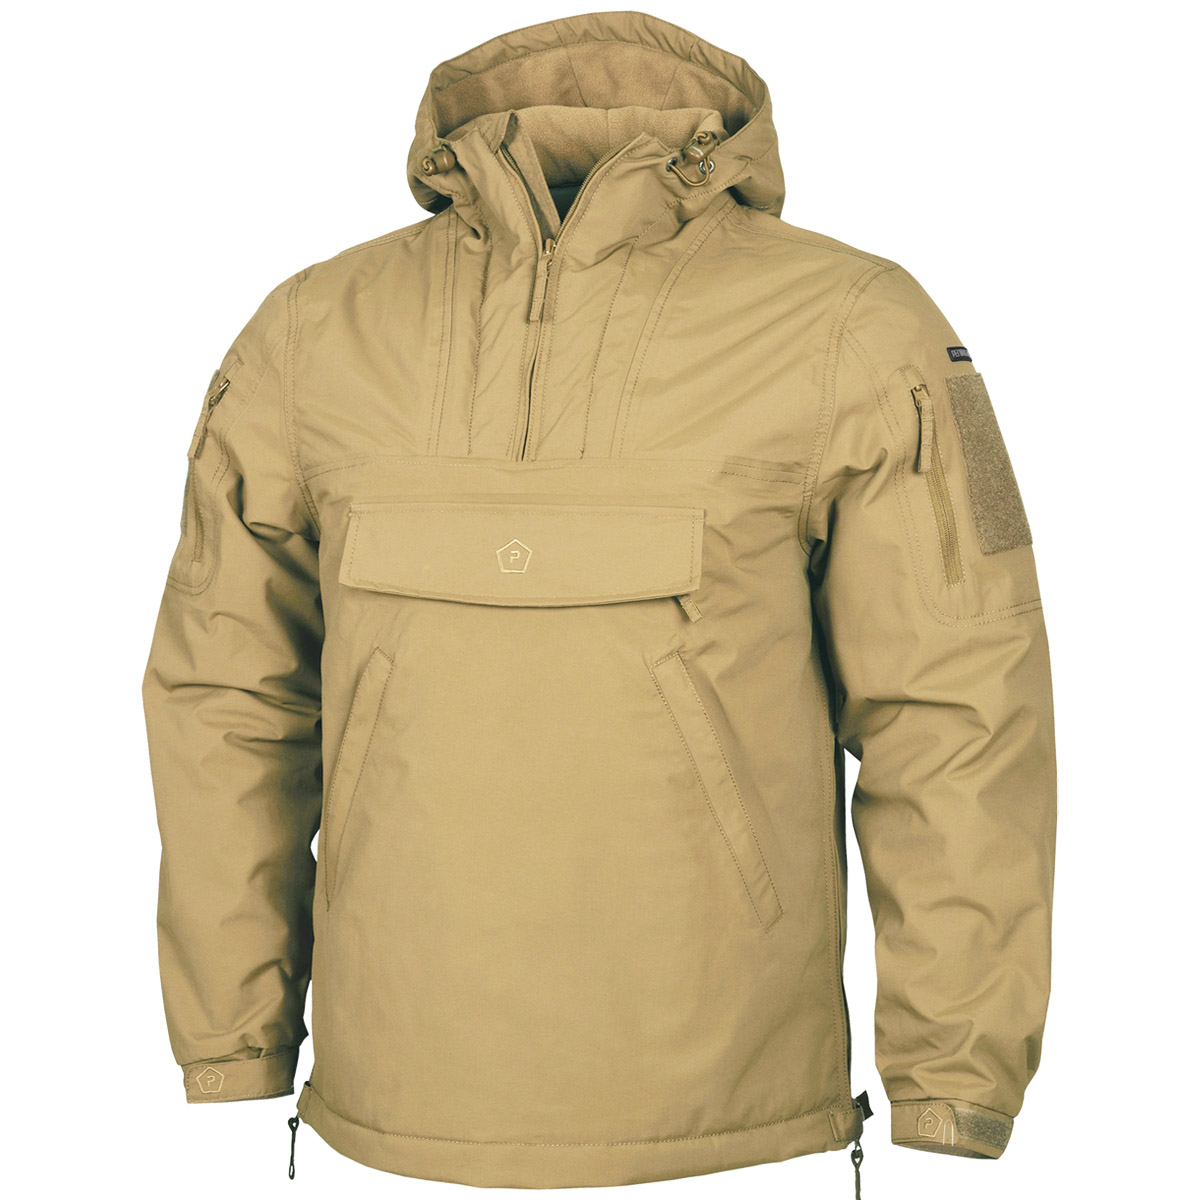 Anorak definition, a hooded pullover jacket originally made of fur and worn in the arctic, now made of any weather-resistant fabric. See more.